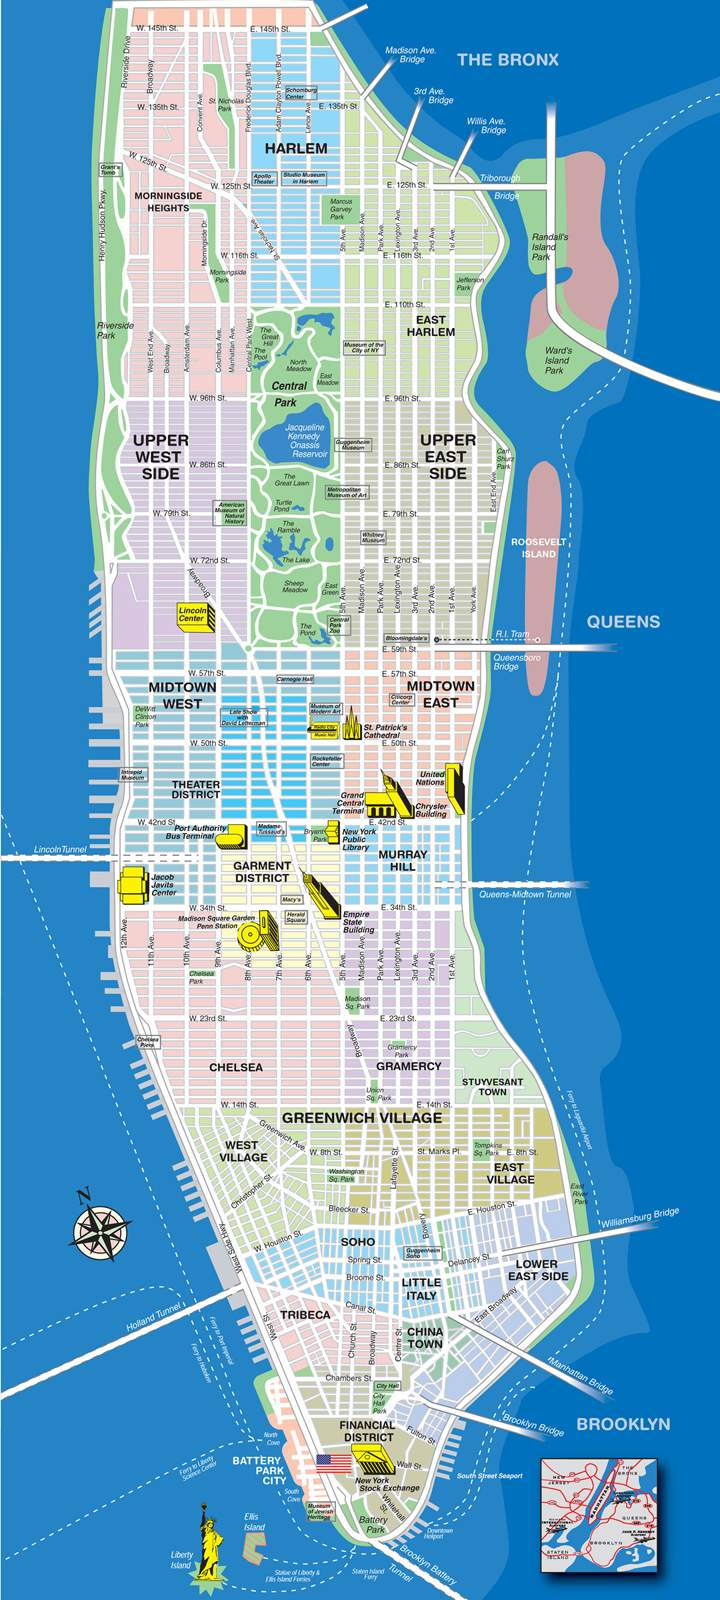 Manhattan Island Map Large Manhattan Maps for Free Download and Print | High Resolution